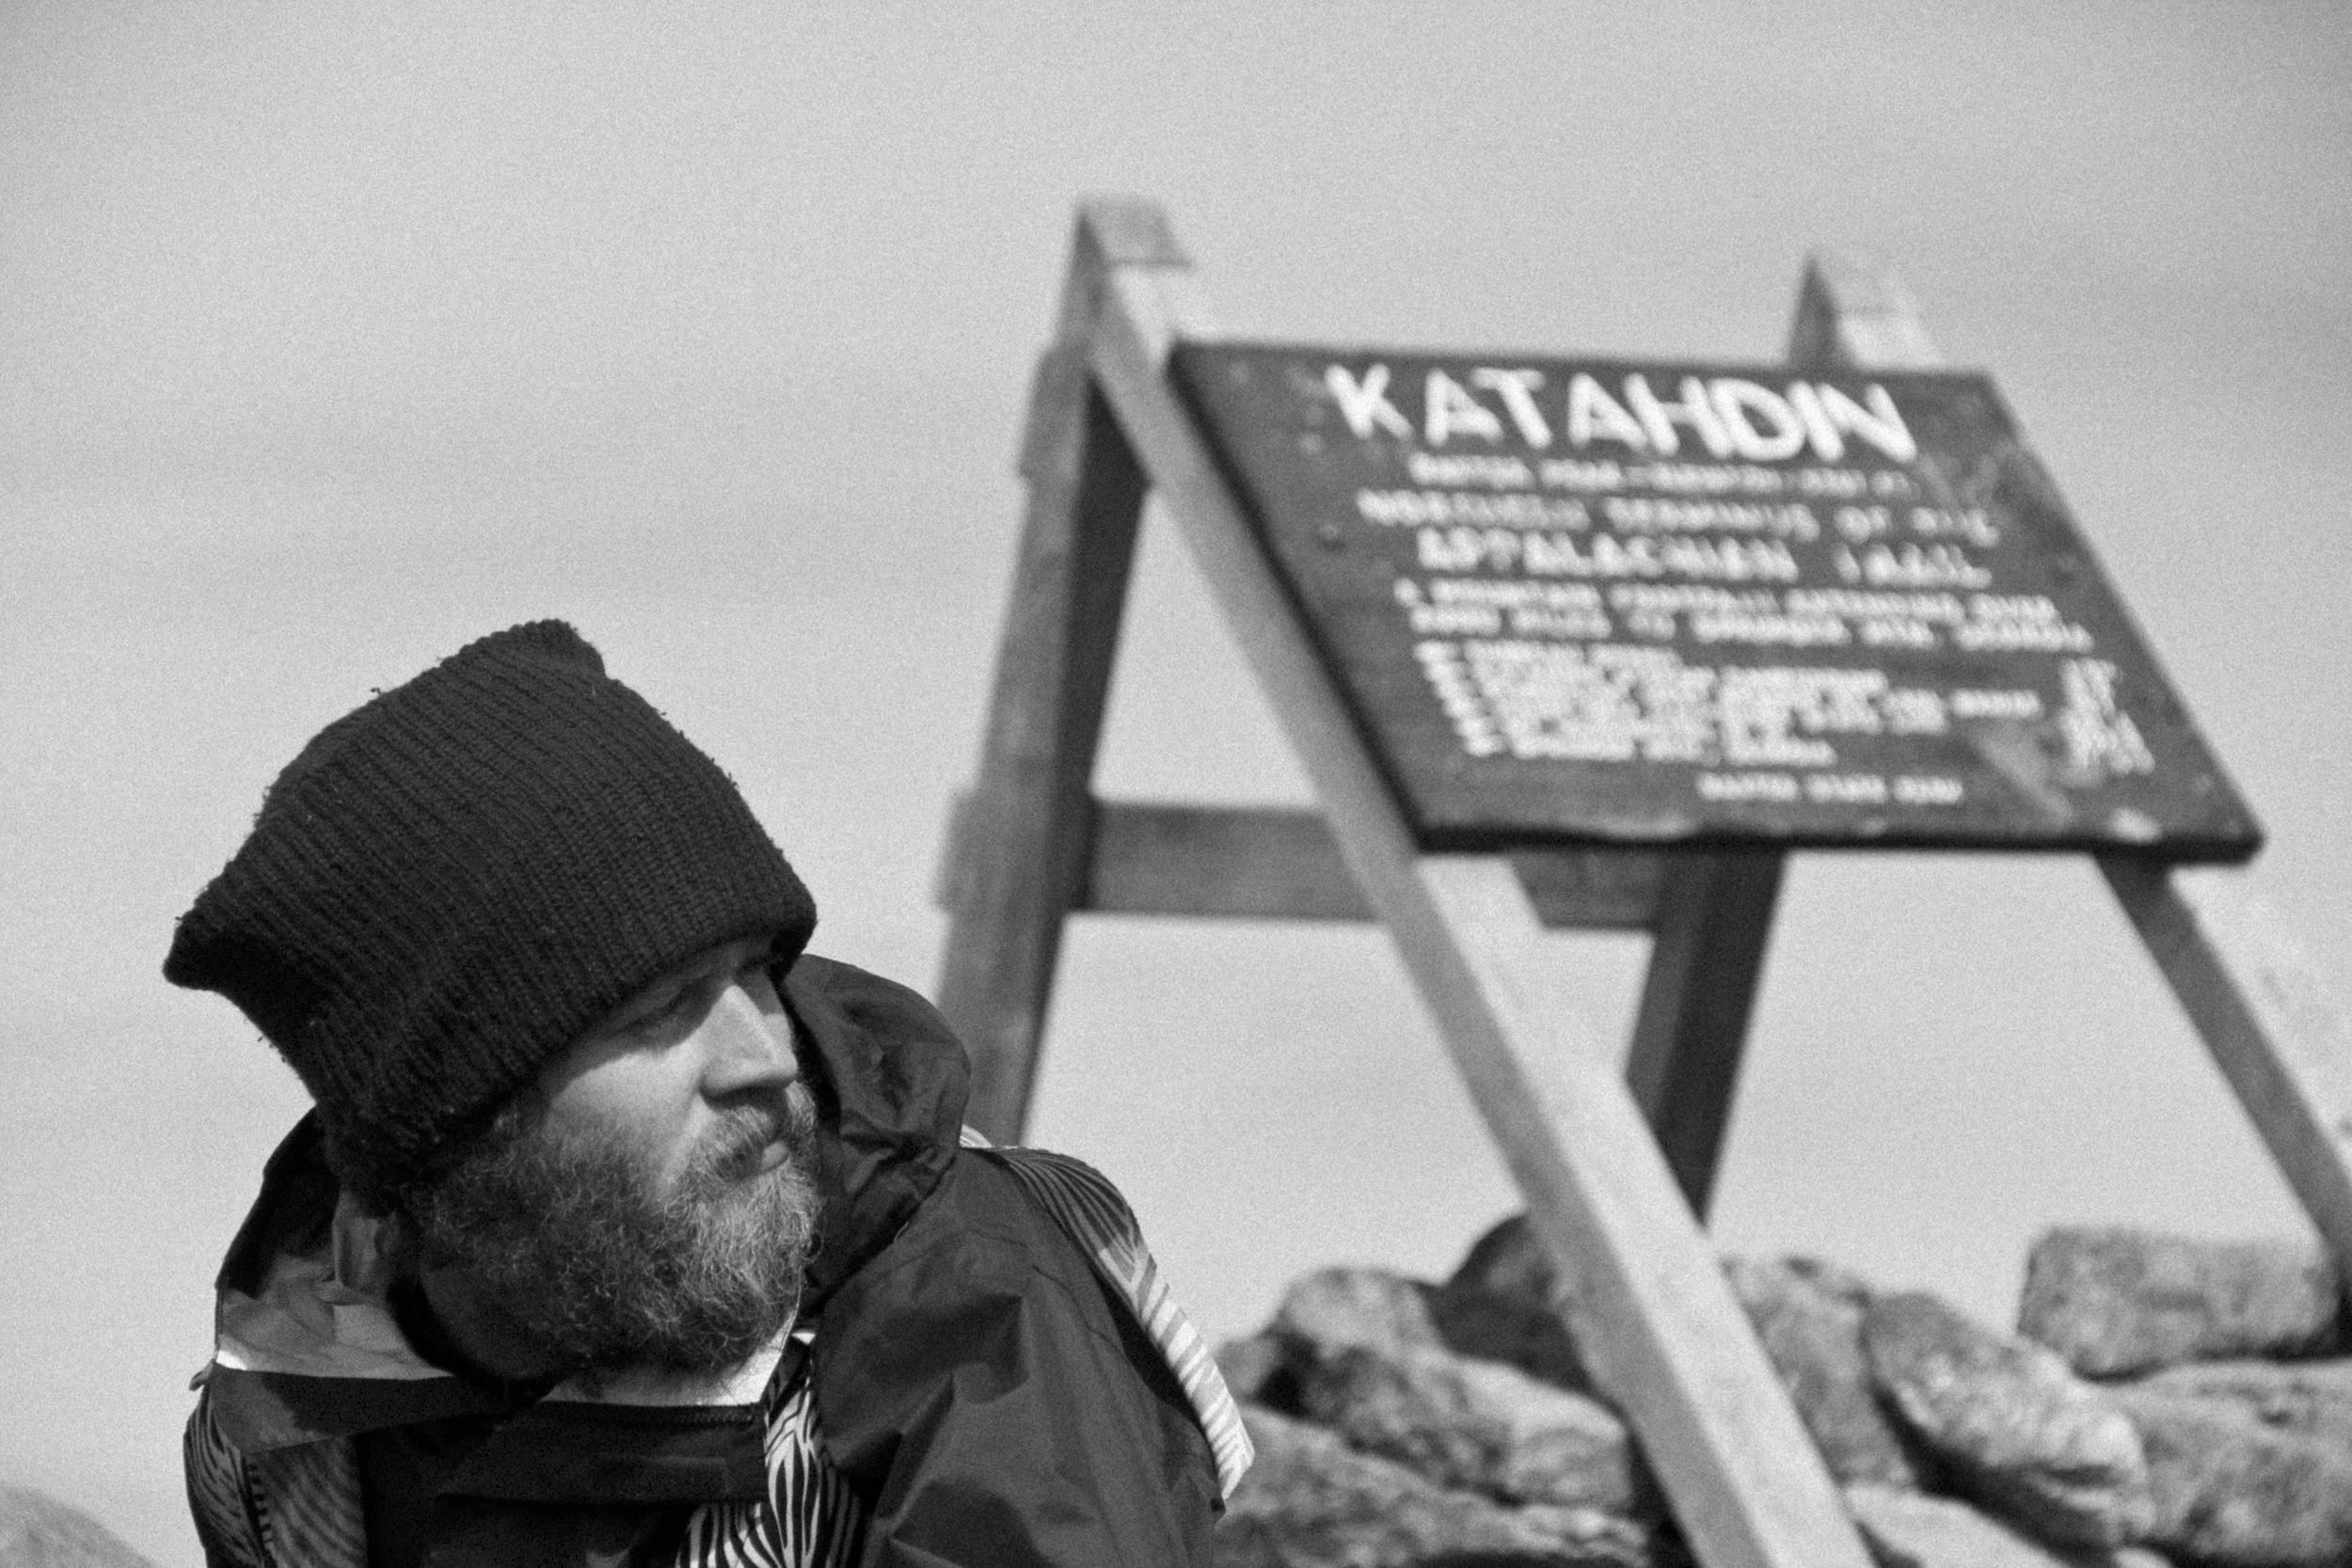 Samson Thee Herbalist caught up in the moment of fulfilling a dream on Mt. Katahdin. The northern terminus of the Appalachian Trail. 2,184.7 miles and growing.